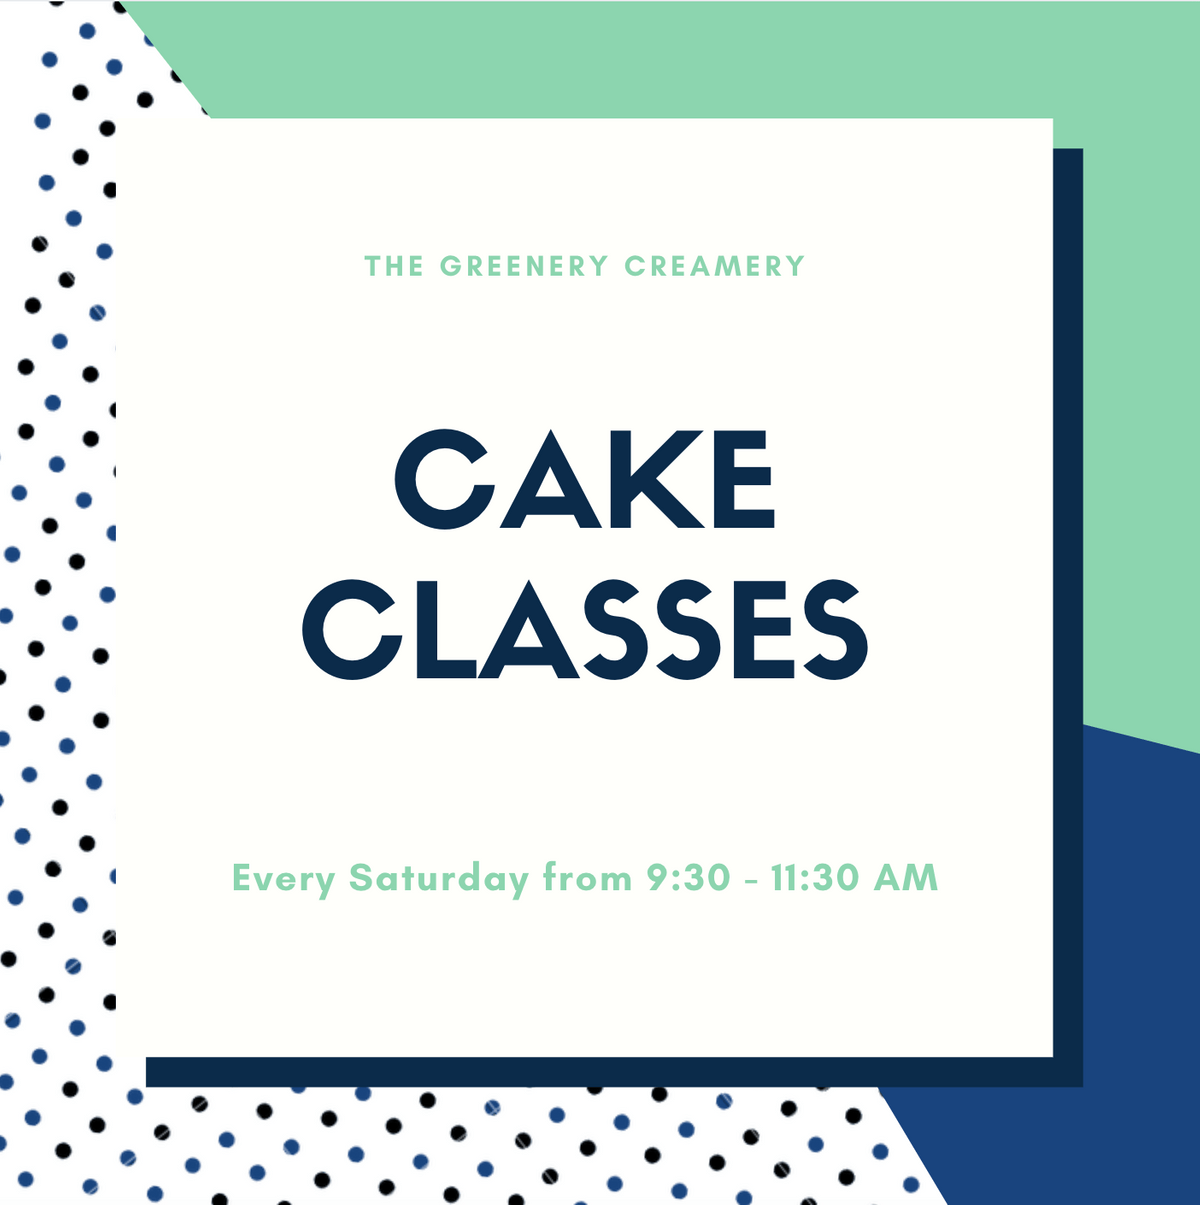 Cake class imagery. Blue and green. Saturdays 9:30 - 11:30am